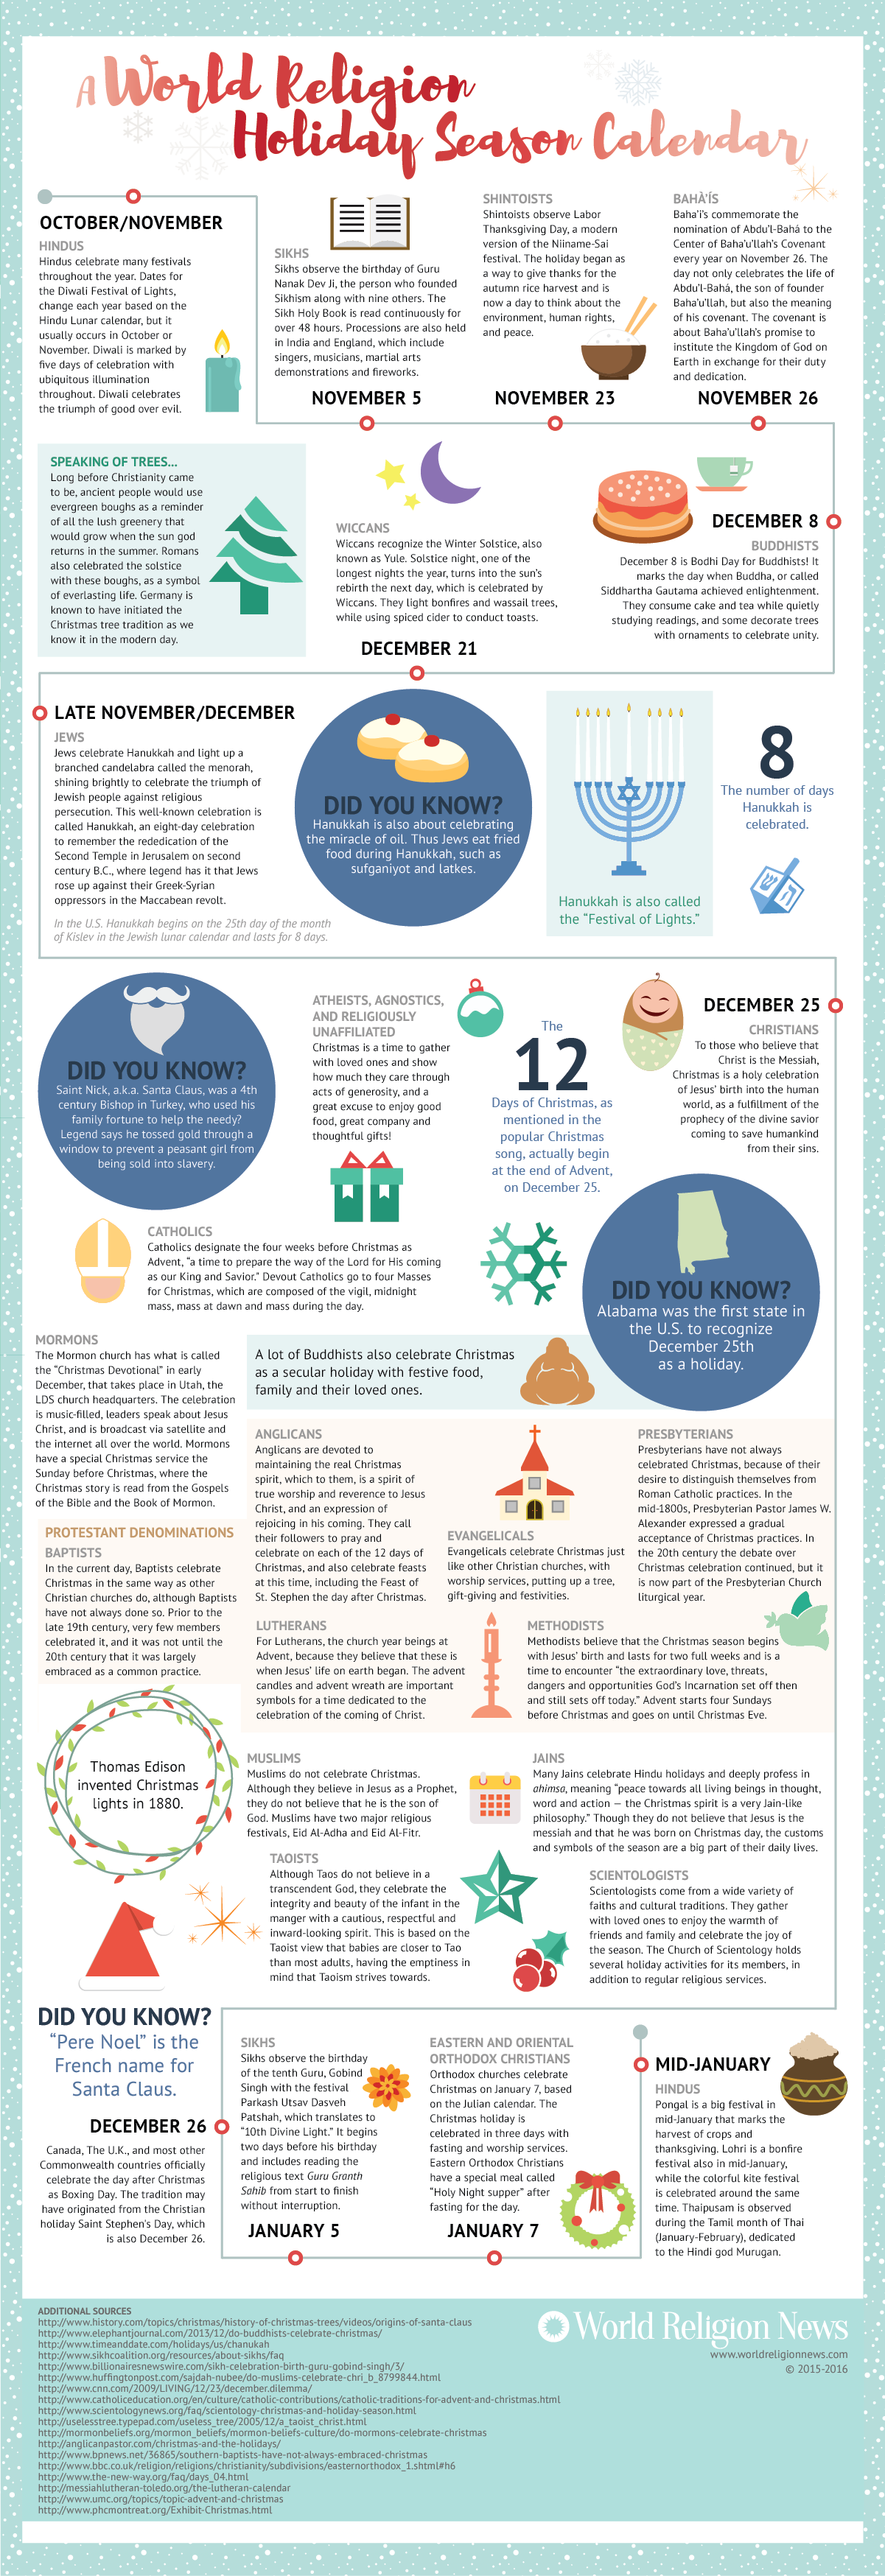 What Do World Religions Do During the Holiday Season? [Infographic]